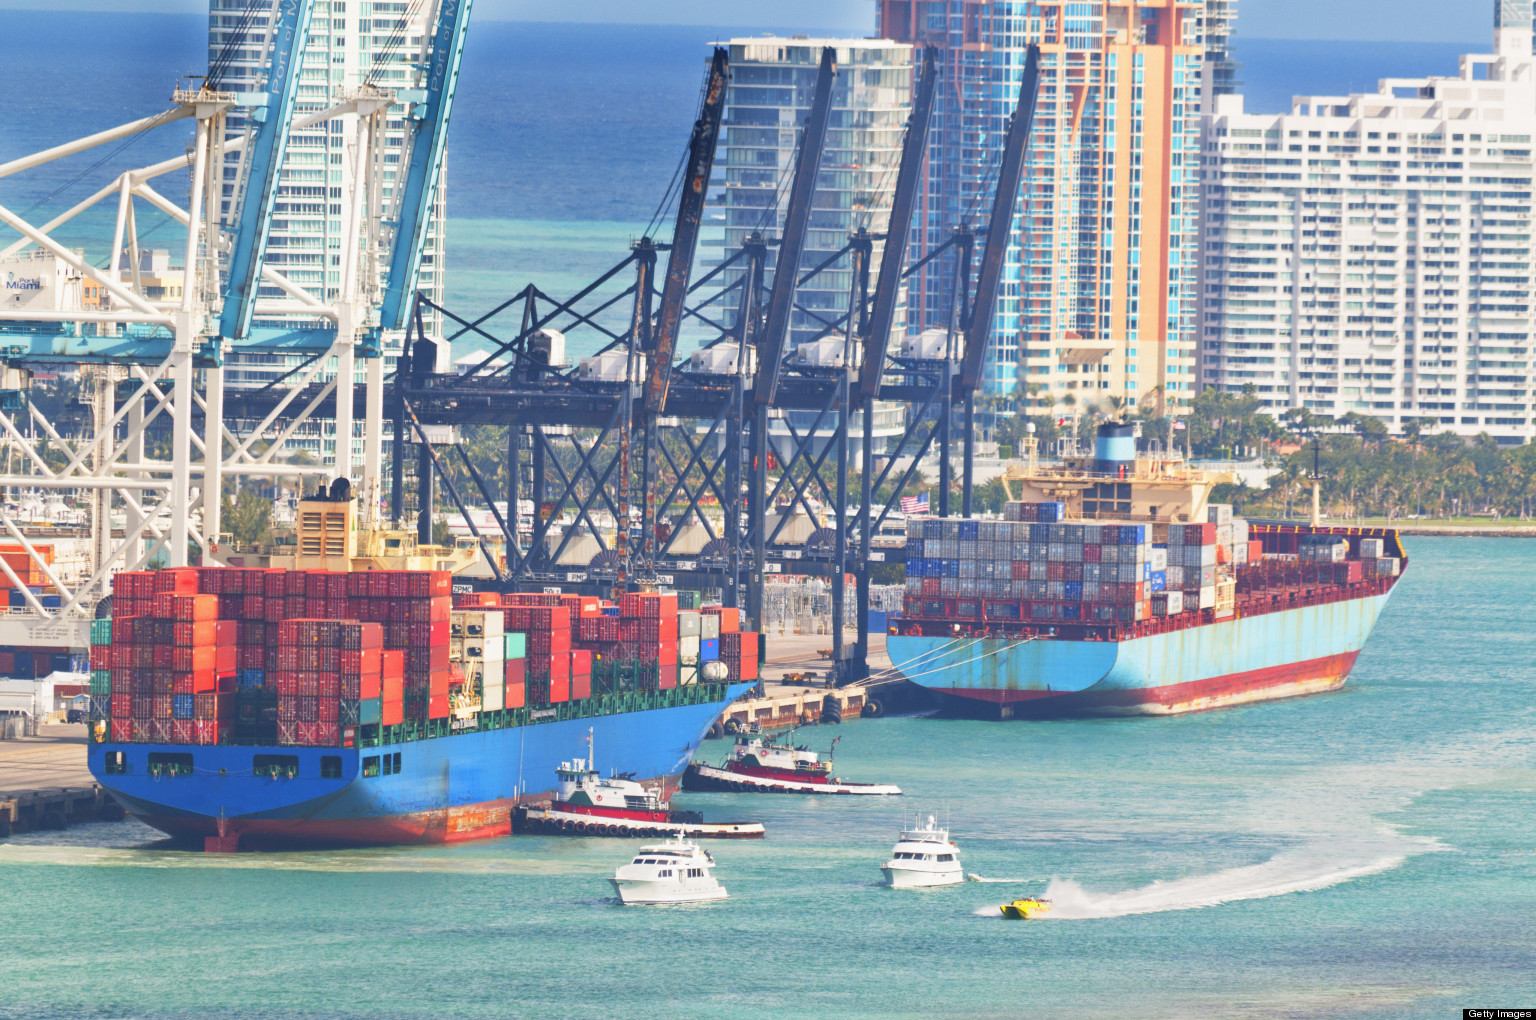 PortMiami: Cargo Gateway of the Americas